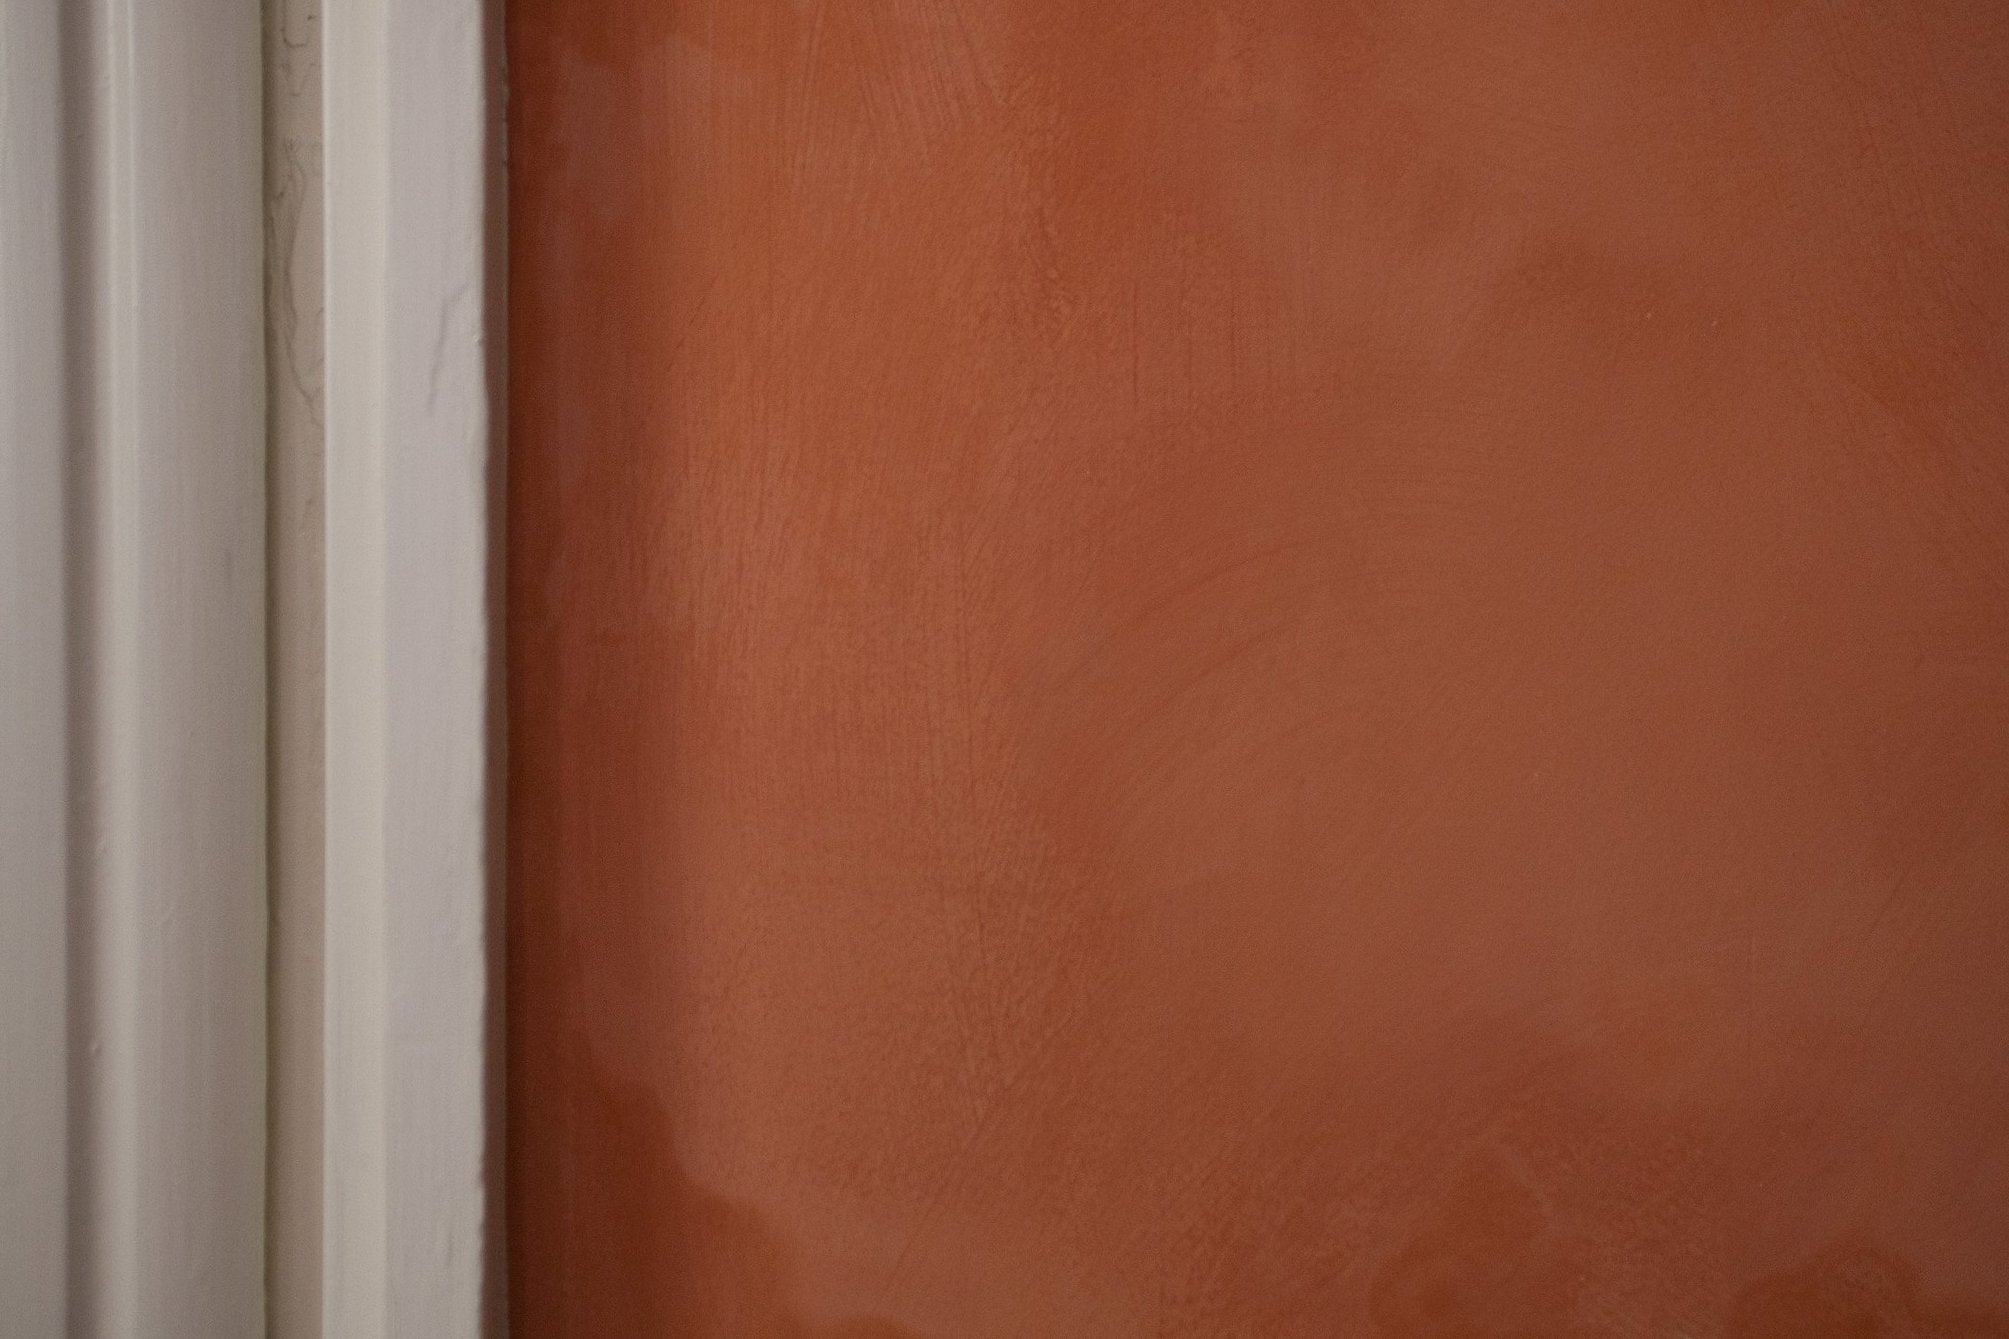 Limewash on interior plaster